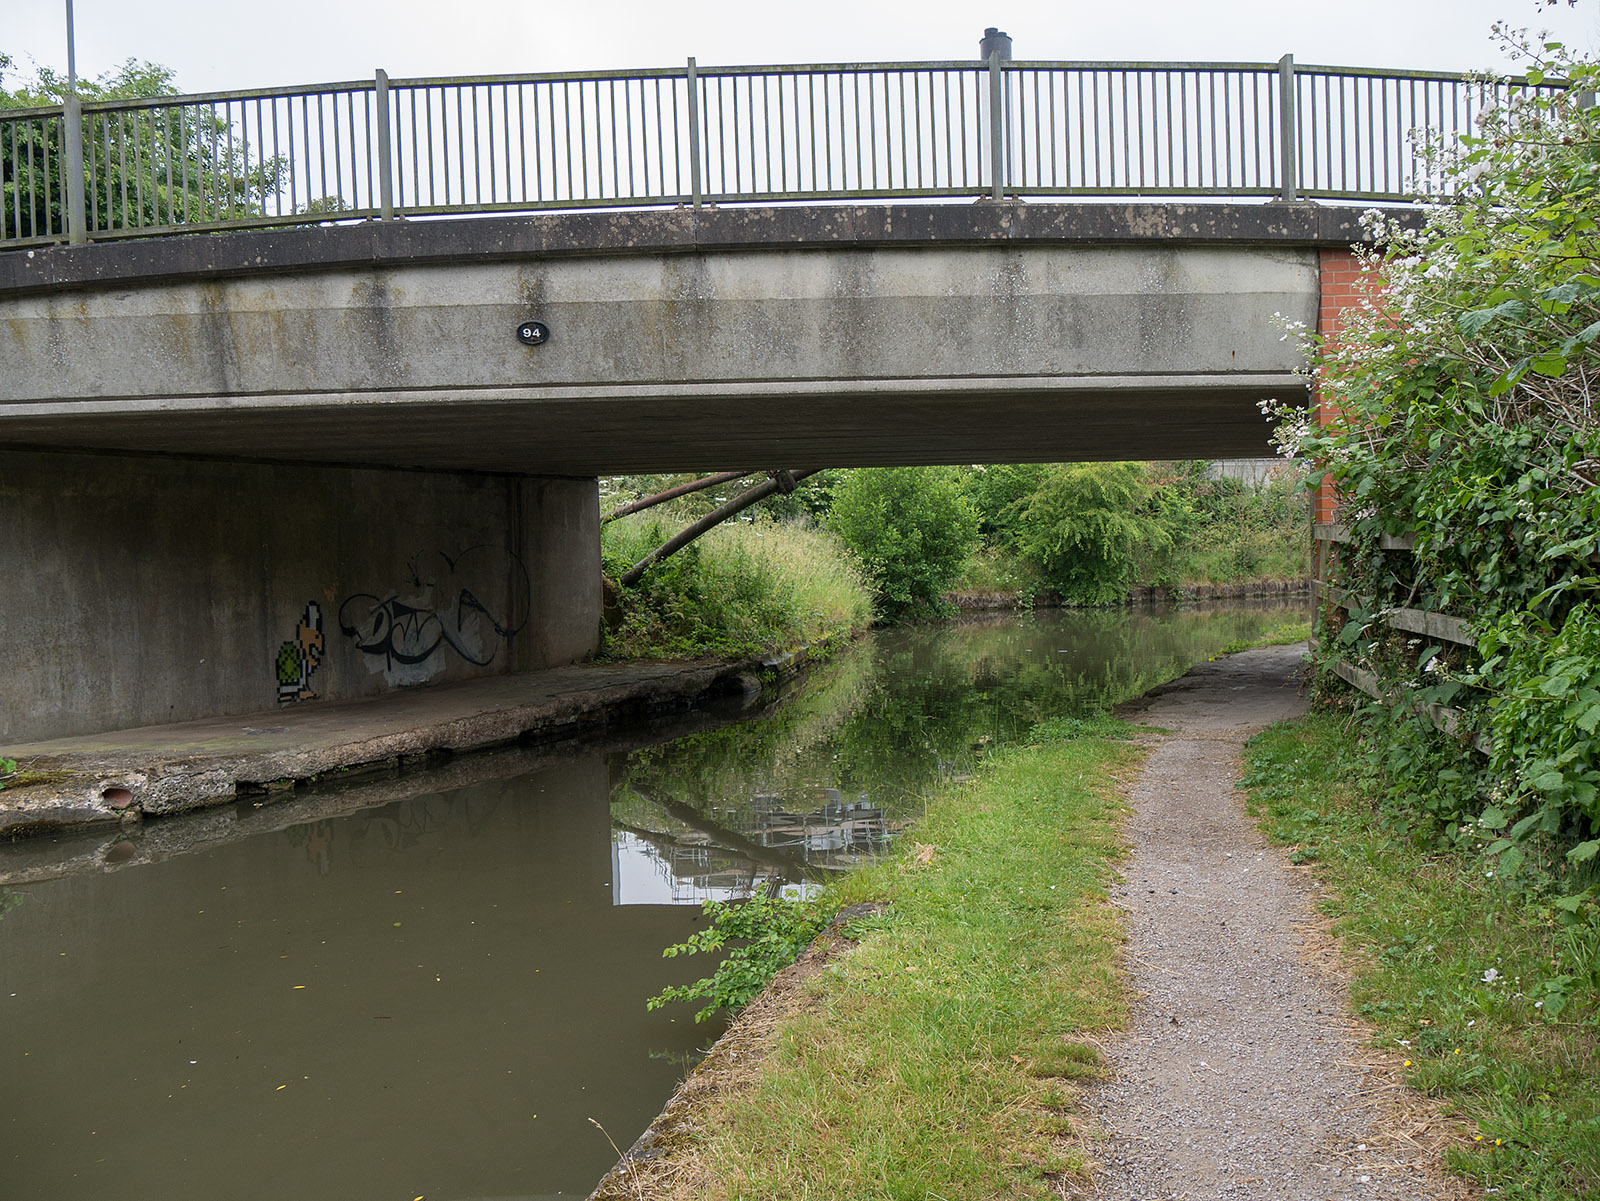 Bridge 94 - typical of the selection of bridges on this walk